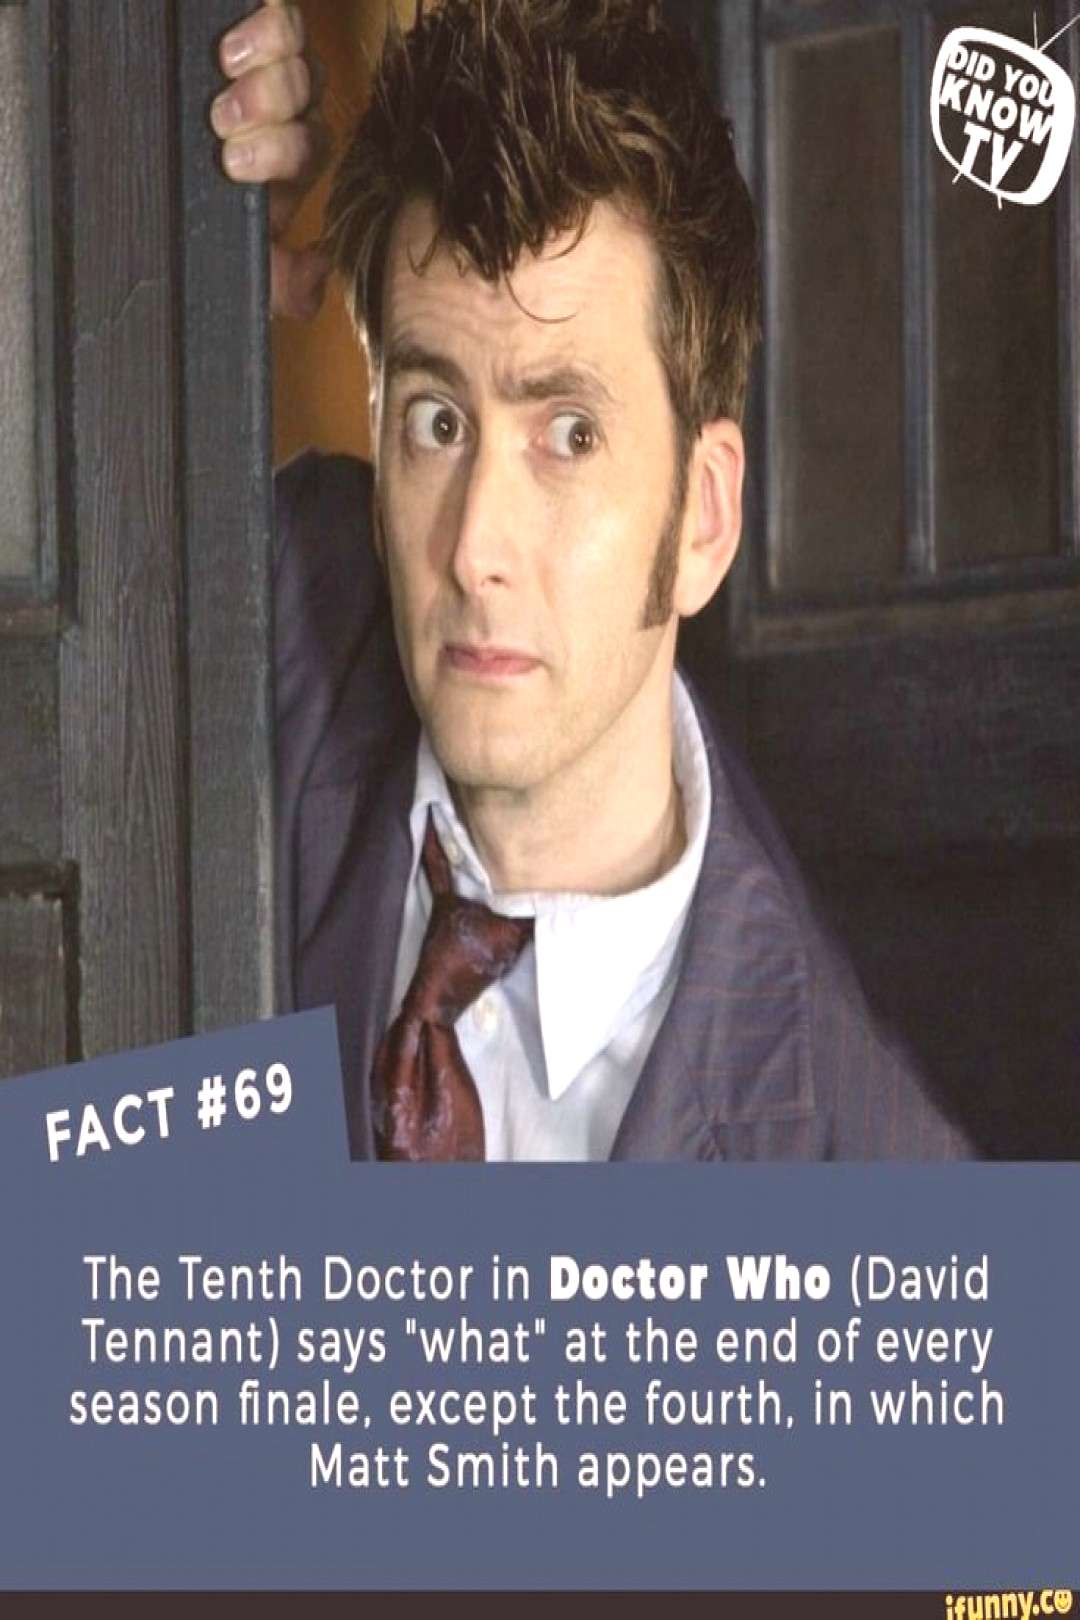 Doctor Who Facts Geek Doctor who facts arzt, der fakten docteur qui fait doctor que hechos